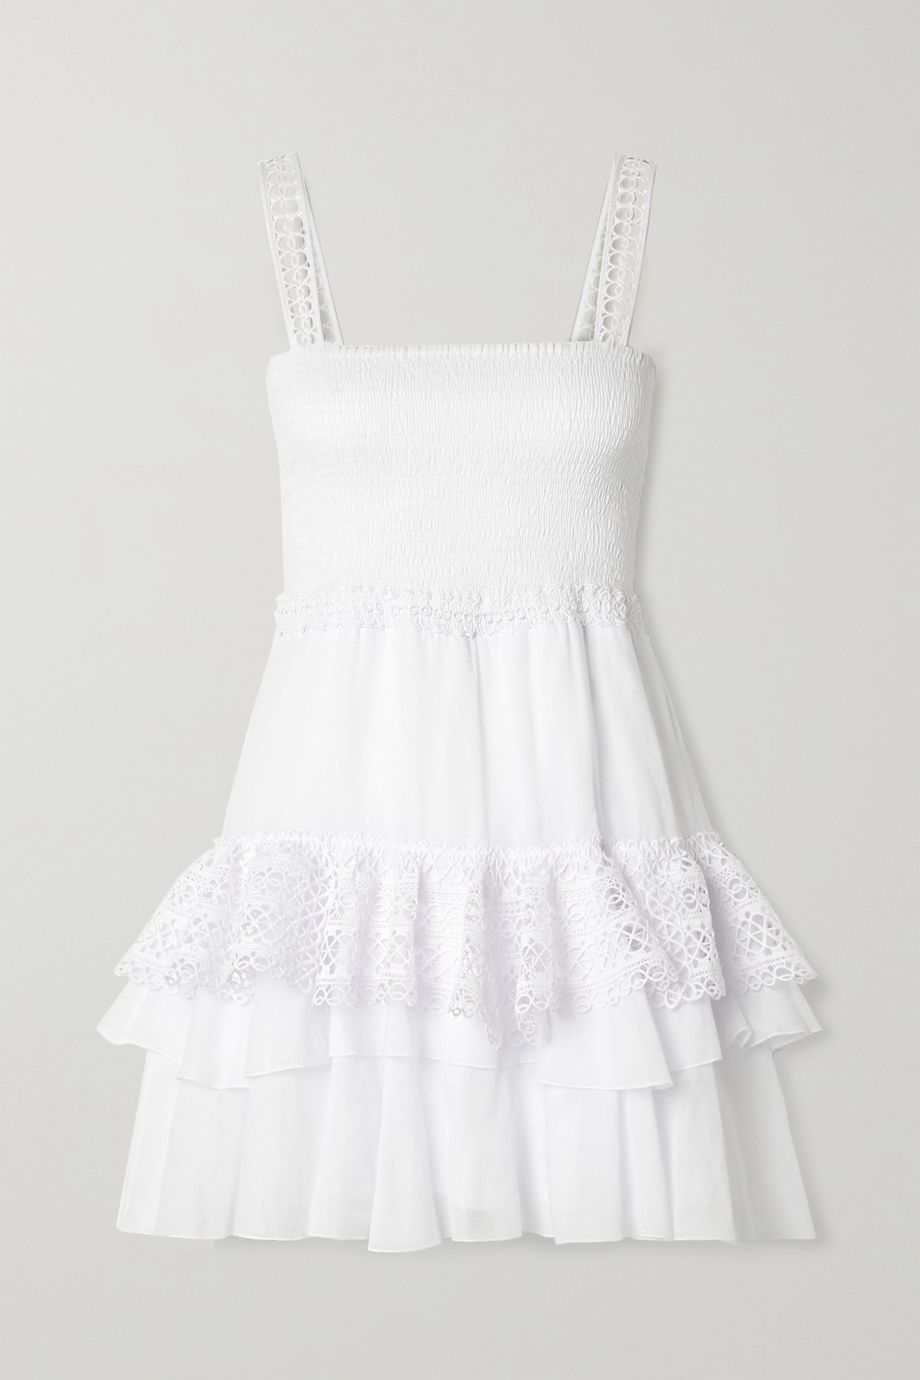 Charo Ruiz Celina crochet-trimmed ruffled cotton-blend voile mini dress